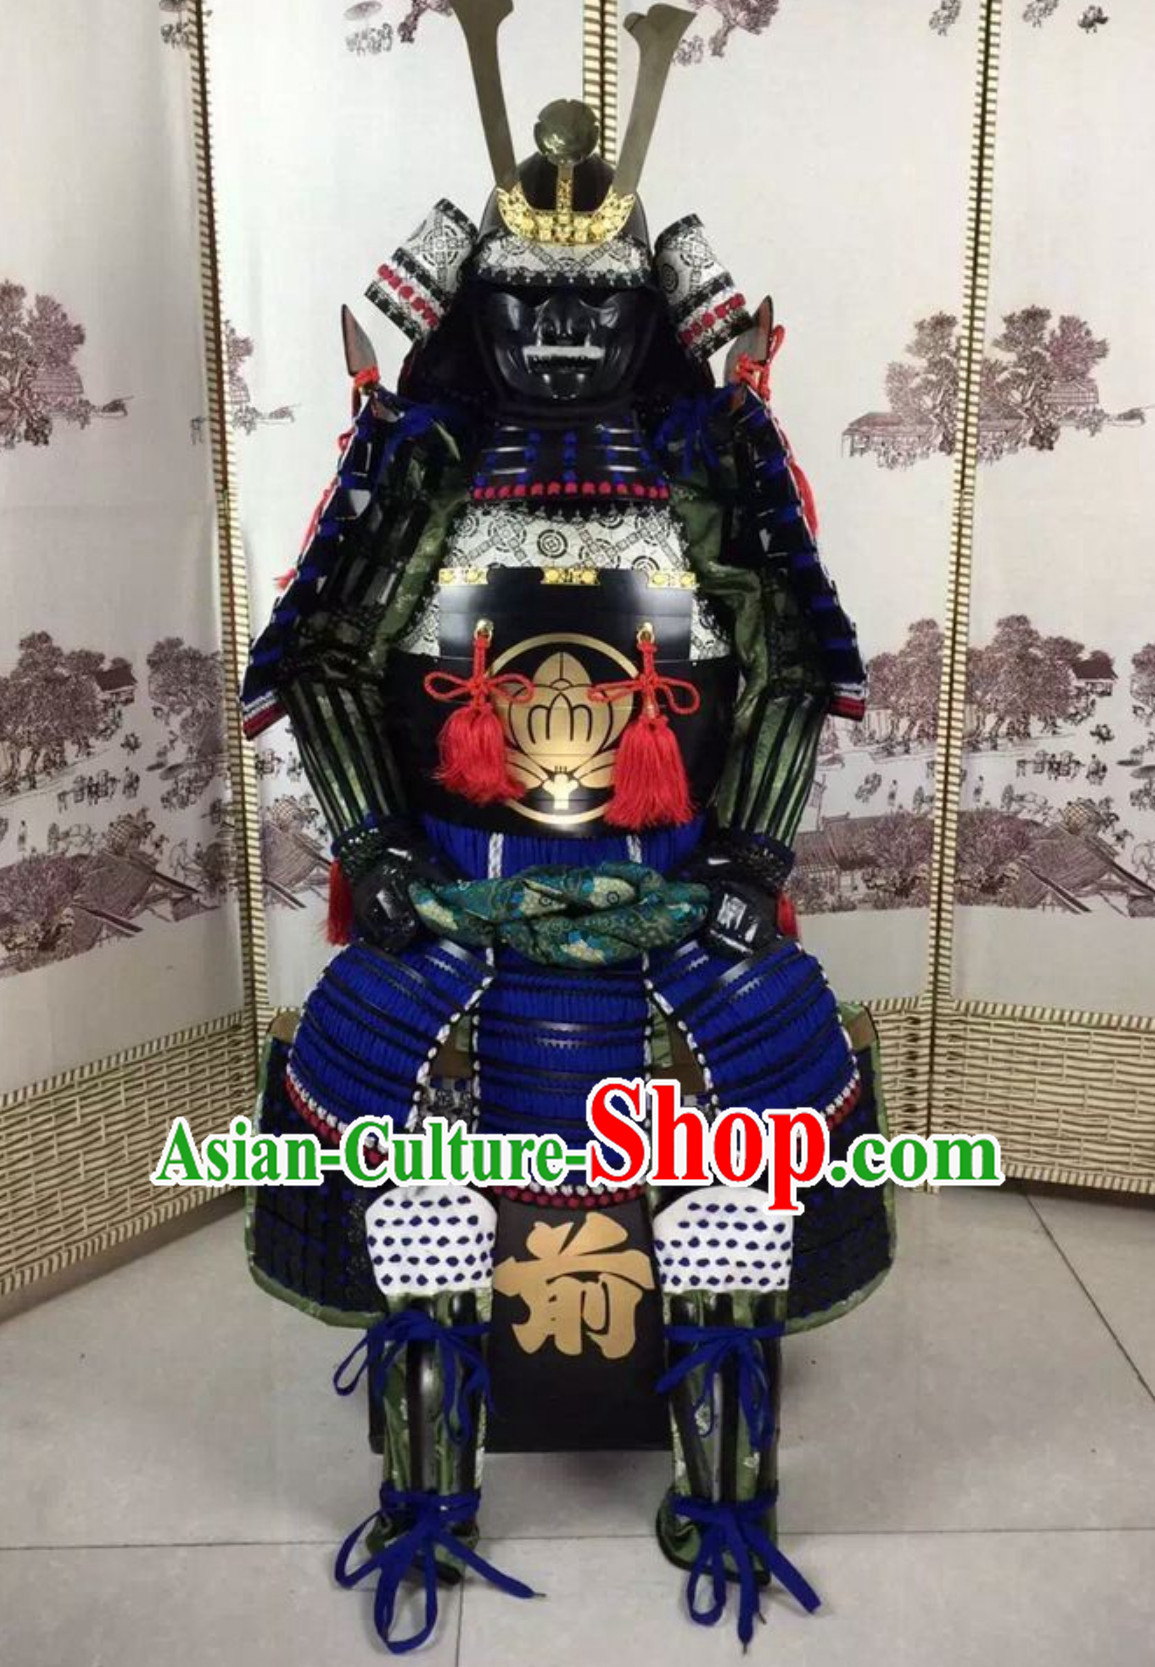 Ancient Authentic Japanese Samurai Armor Japanese Samurai Body Armor Custom Japanese Samurai Armor Mask and Body Armors Complete Set